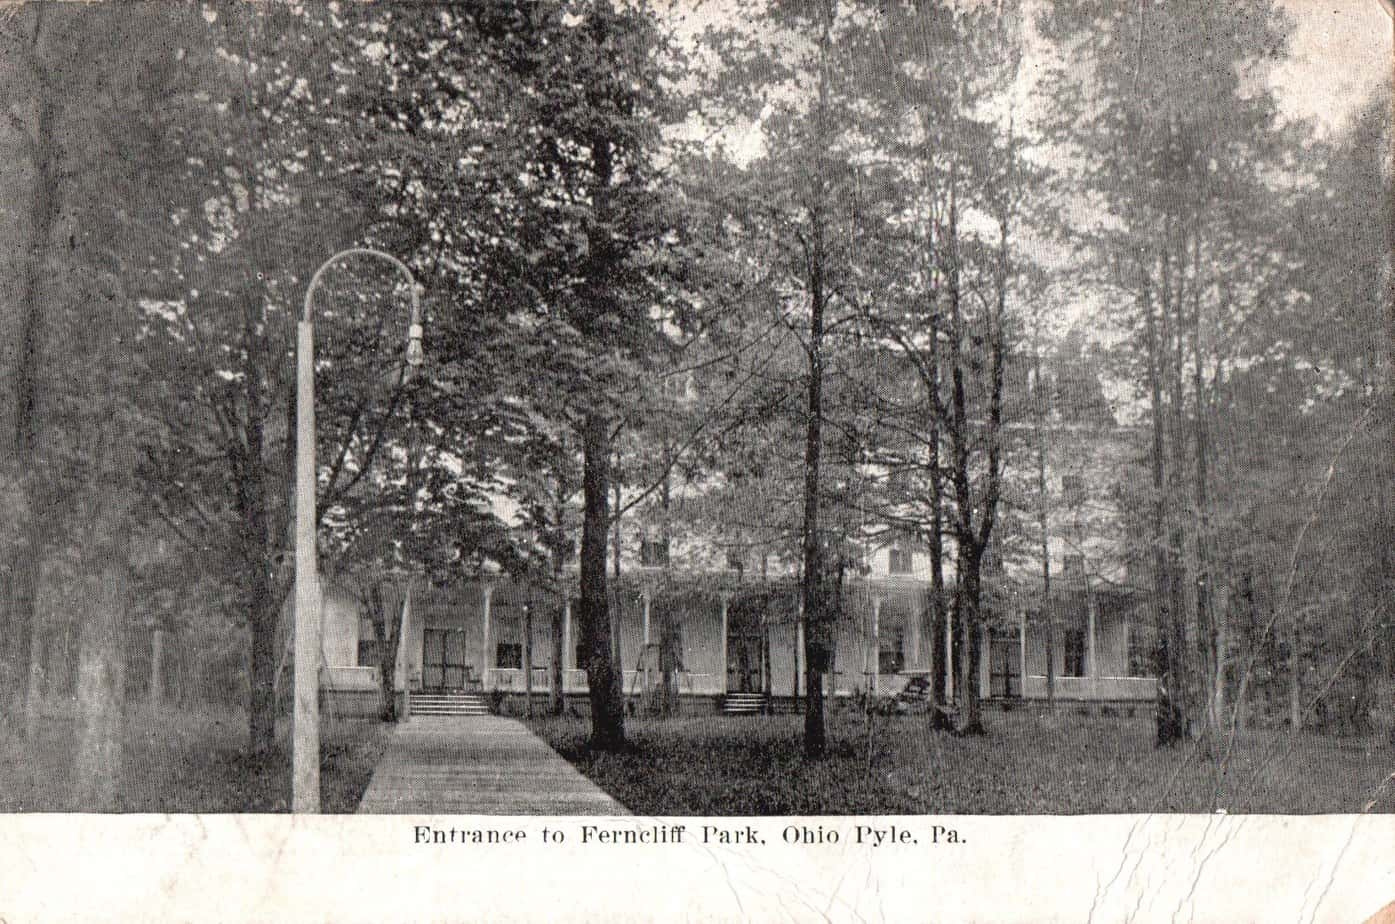 Ferncliff Hotel at Ohiopyle